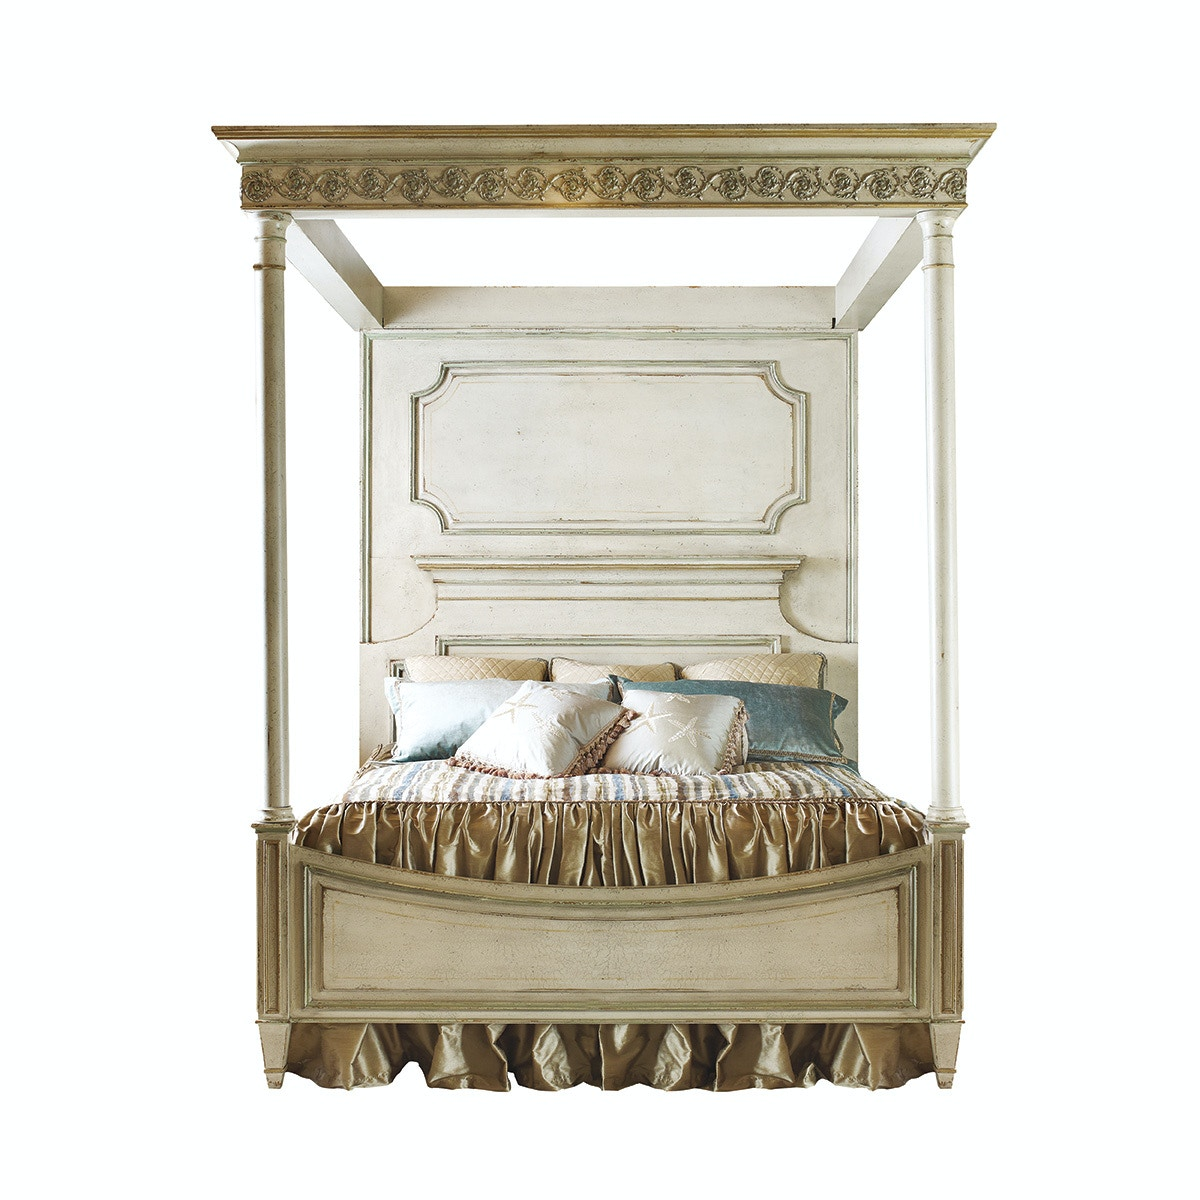 vanderbilt furniture. Habersham Furniture Biltmore Vanderbilt King Bed 64-5755 H